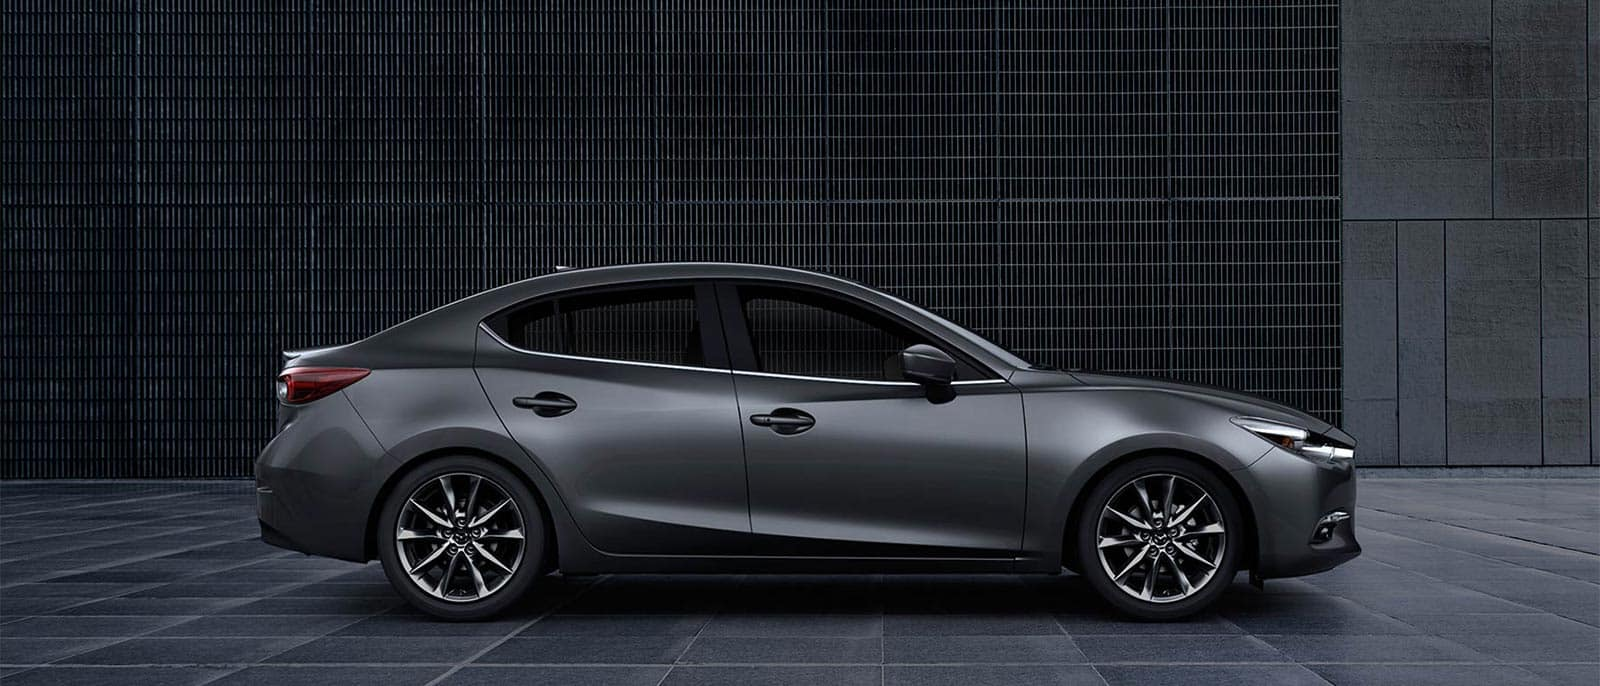 2018 Mazda3 4 Door Industrial Background